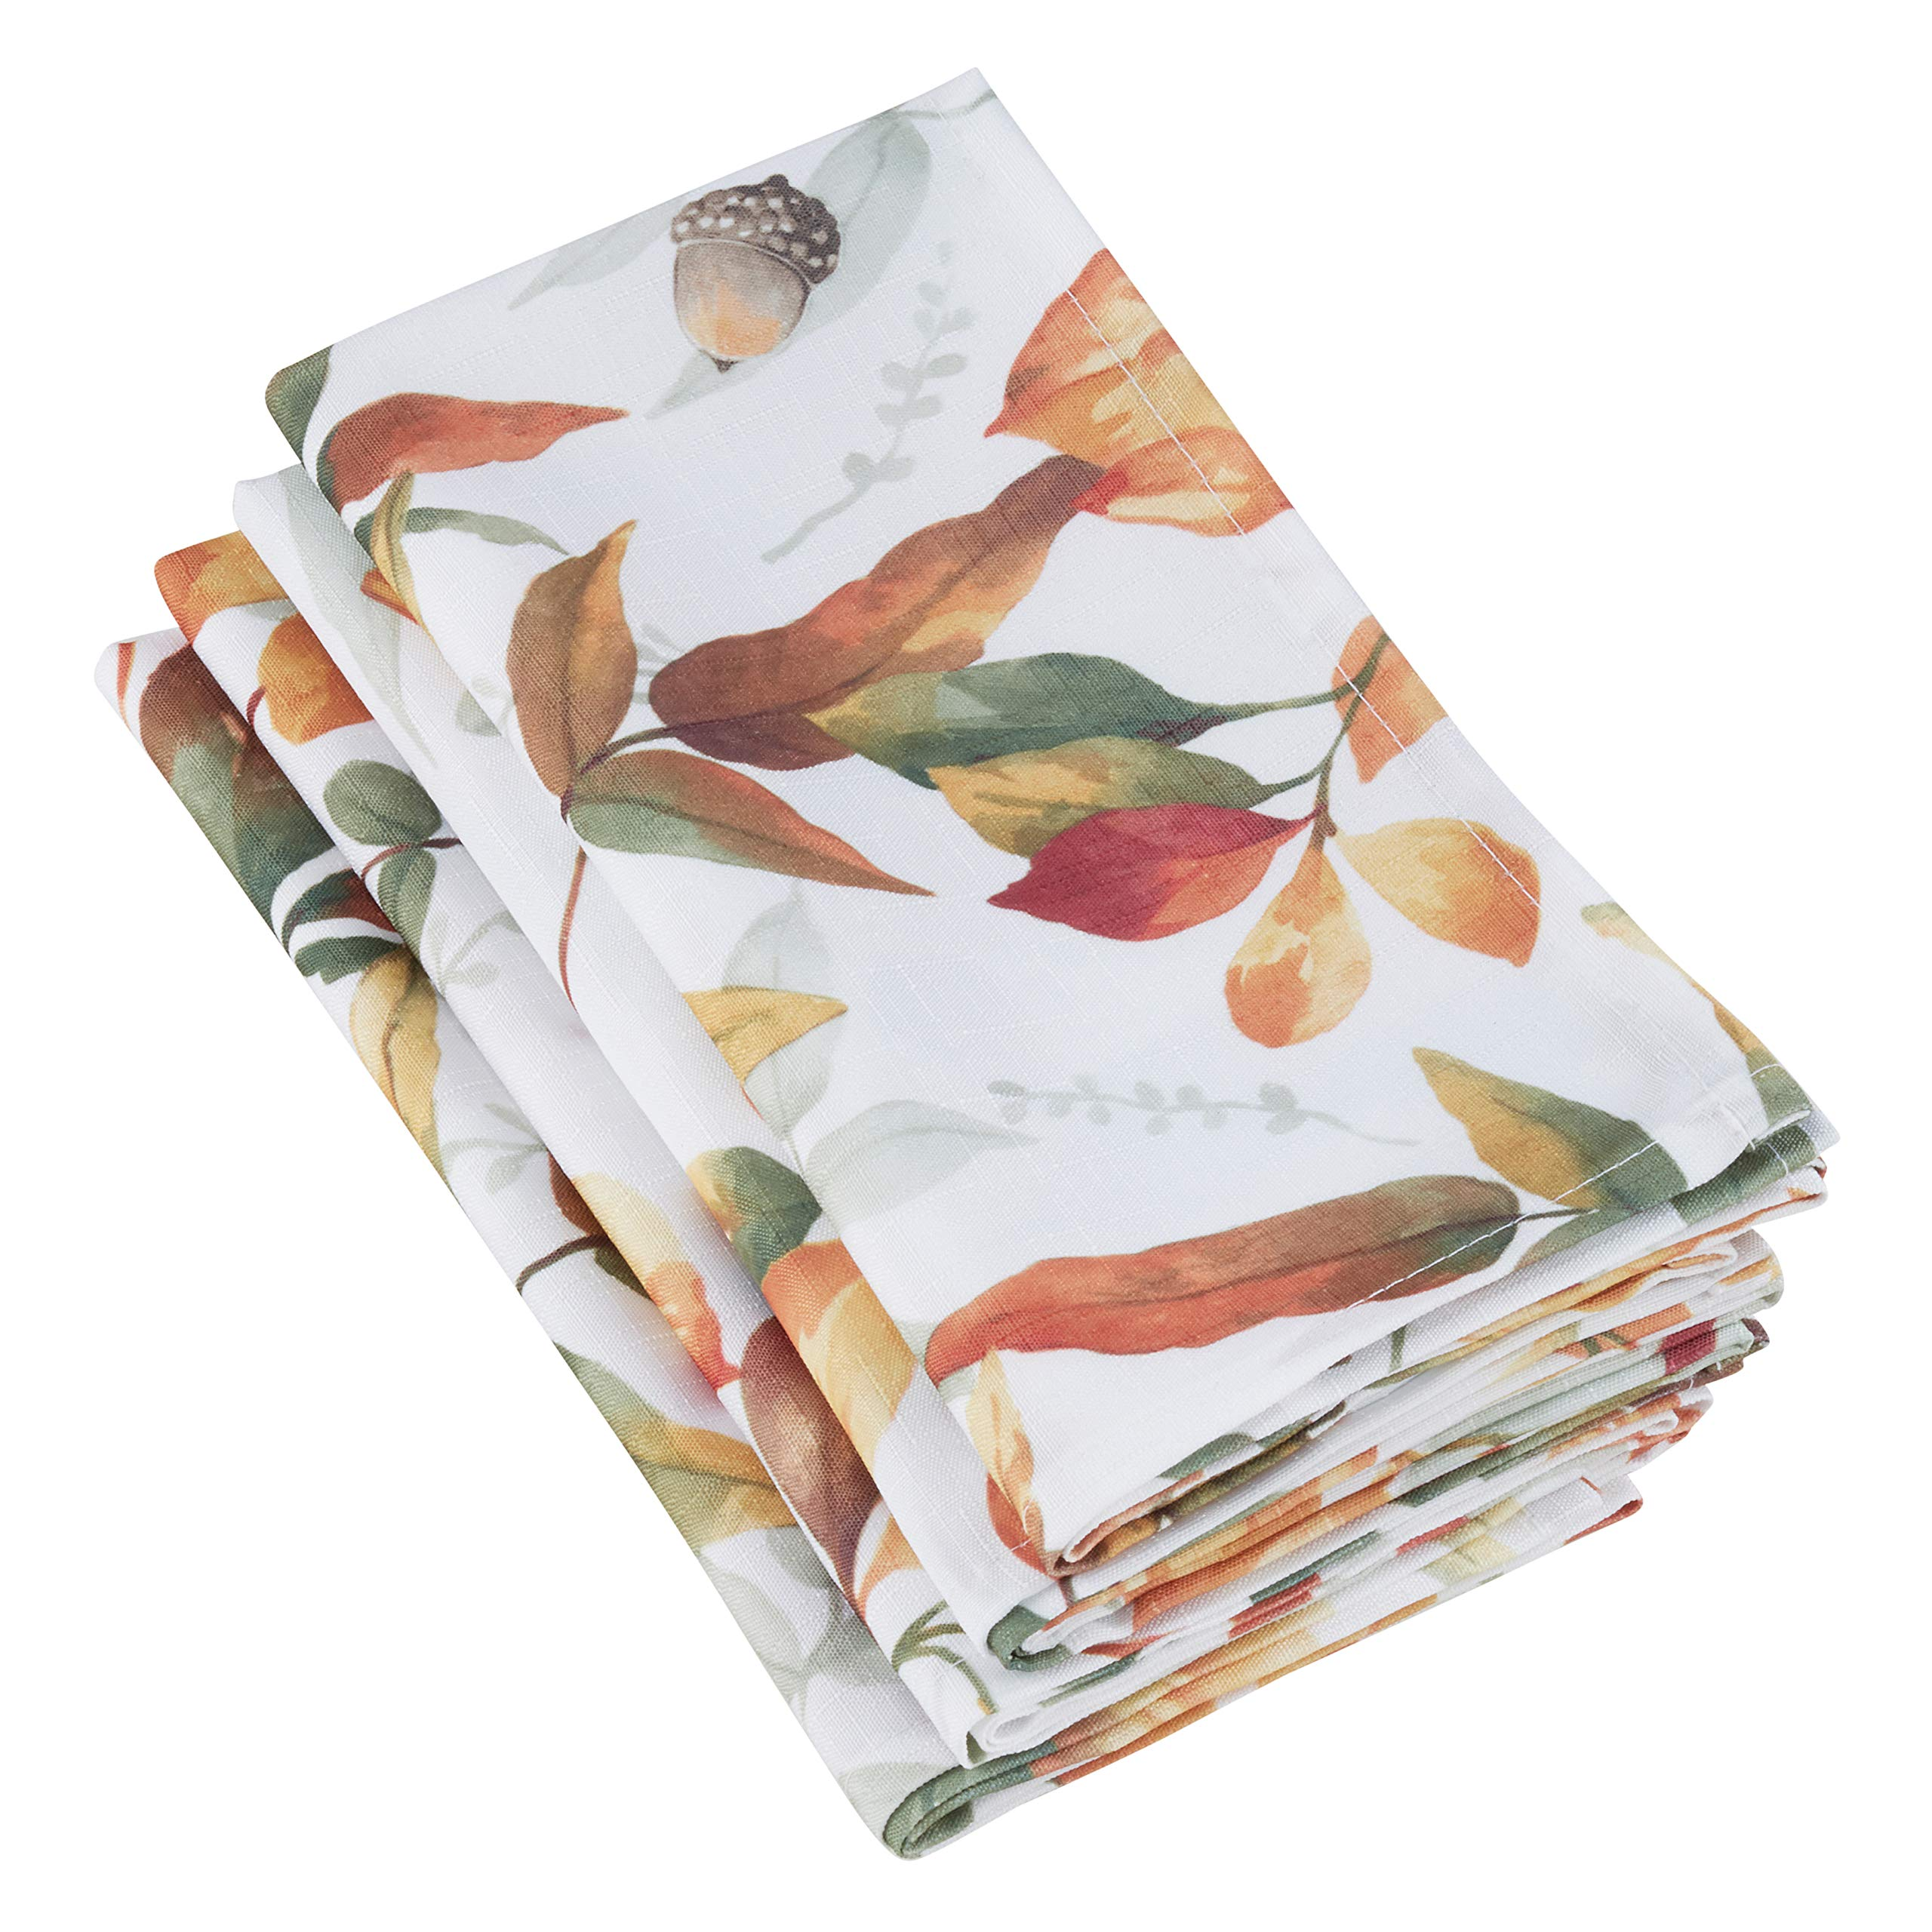 SARO LIFESTYLE 5050.M20S Feuilles Collection Fall Leaf Design Dinner Table Napkins (Set of 4), 20'', Multi